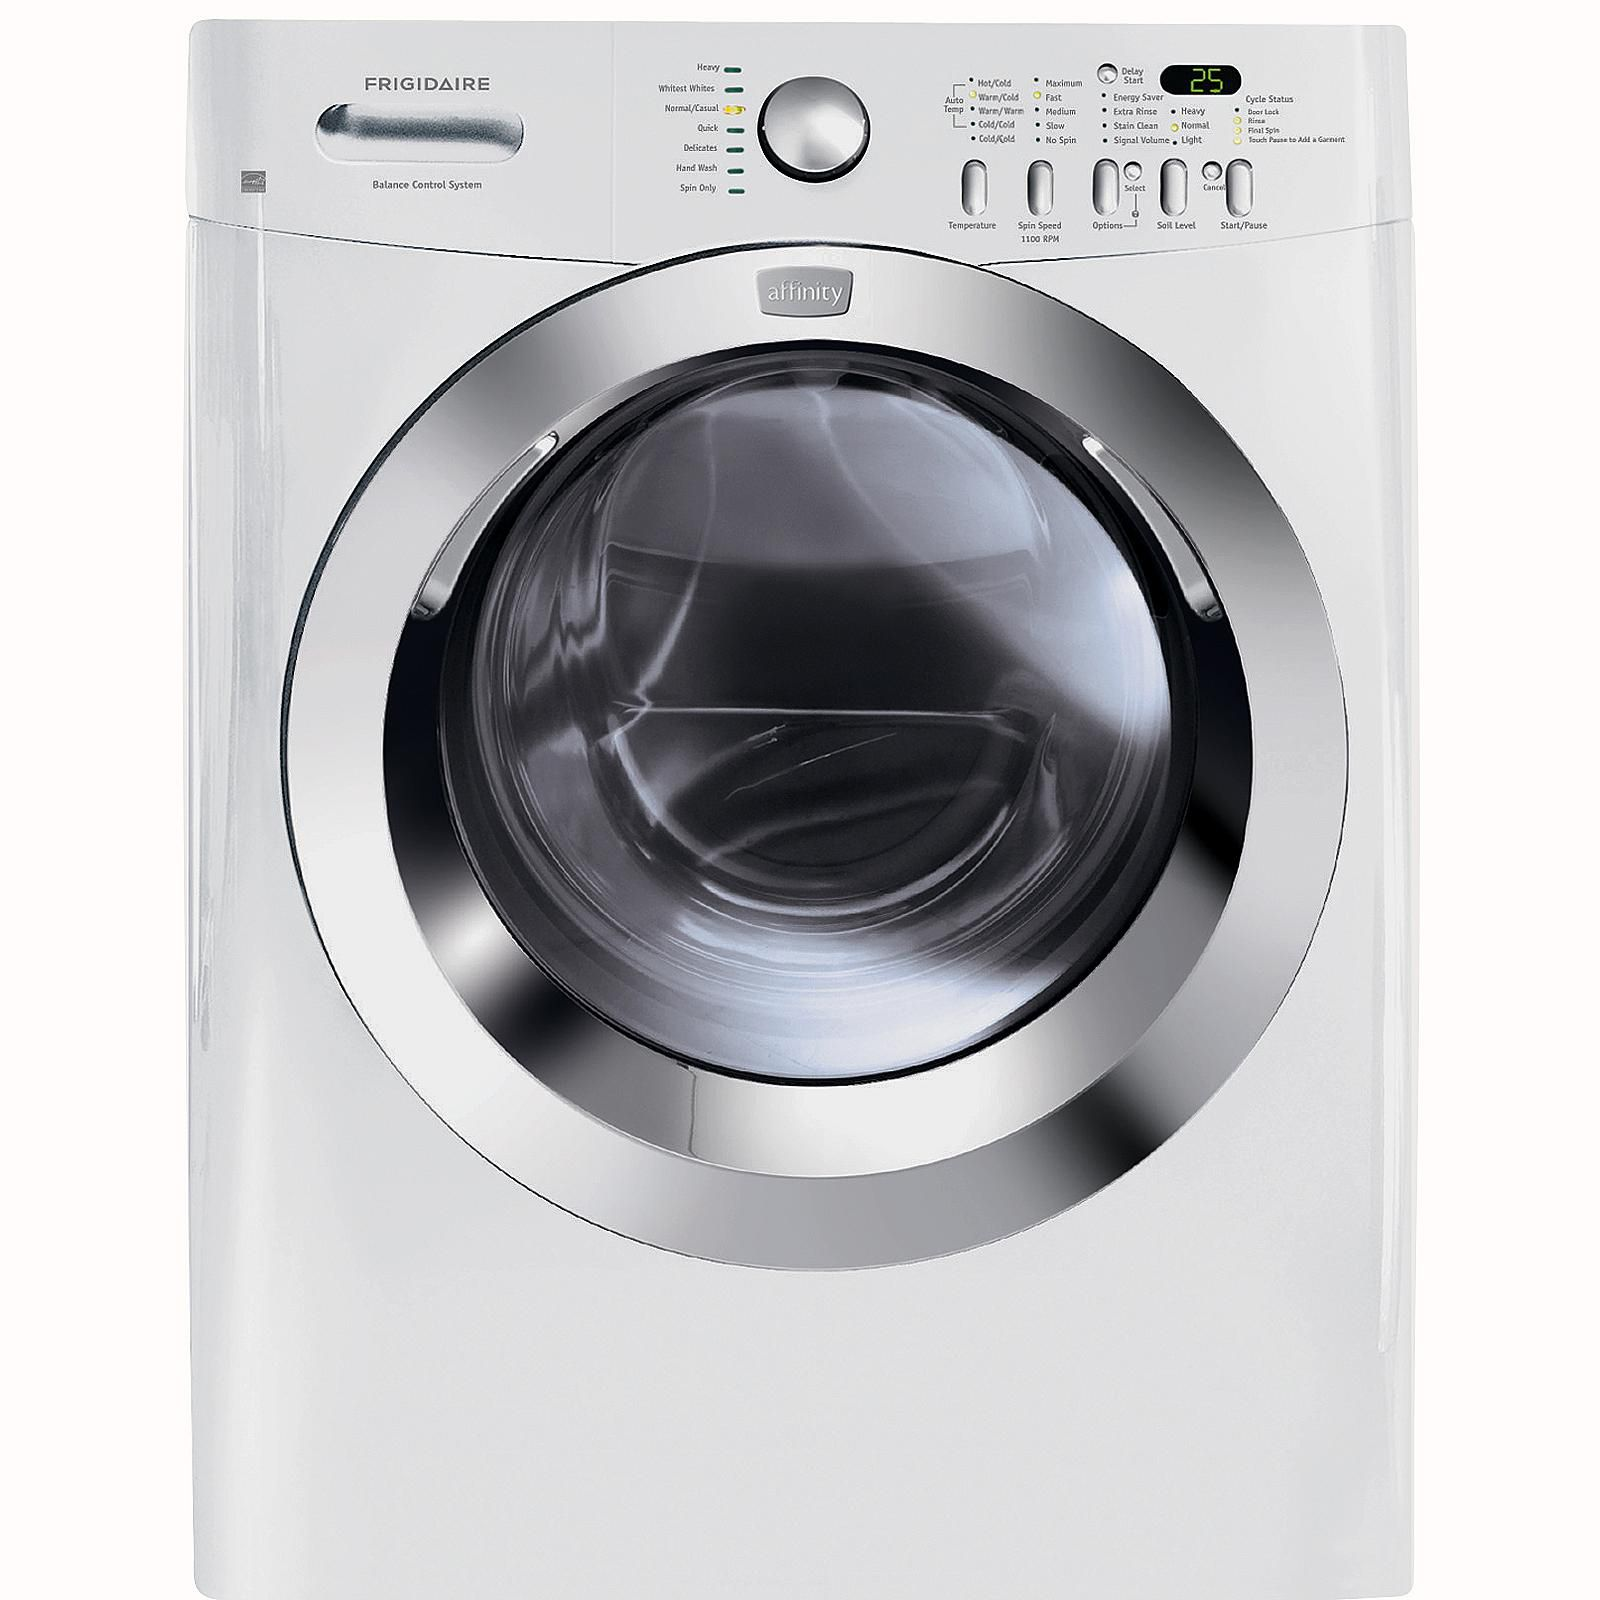 how to reset frigidaire washer